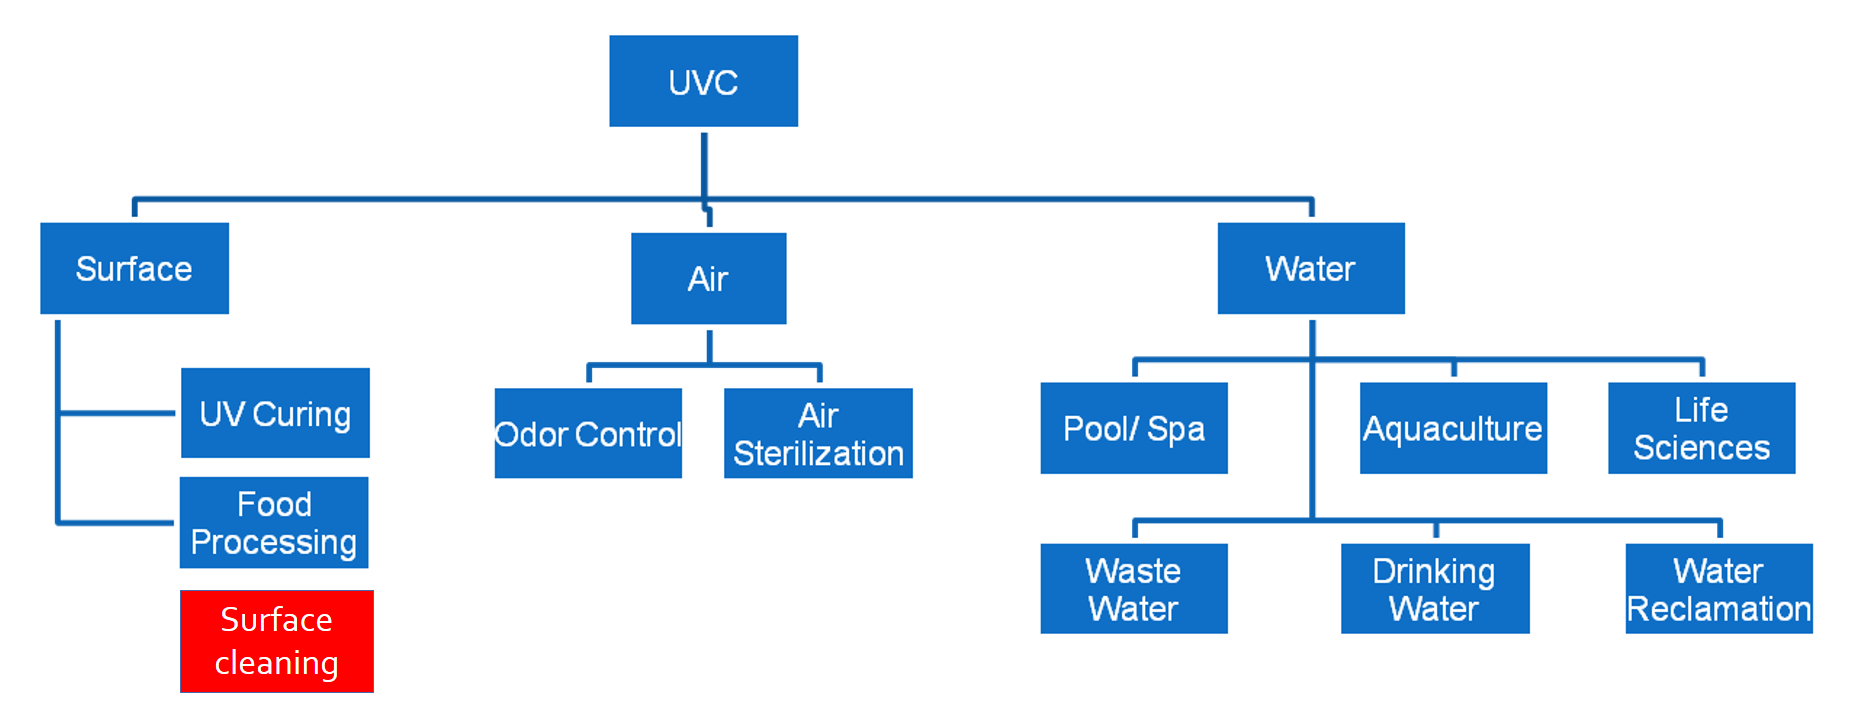 UVC downstream value chain